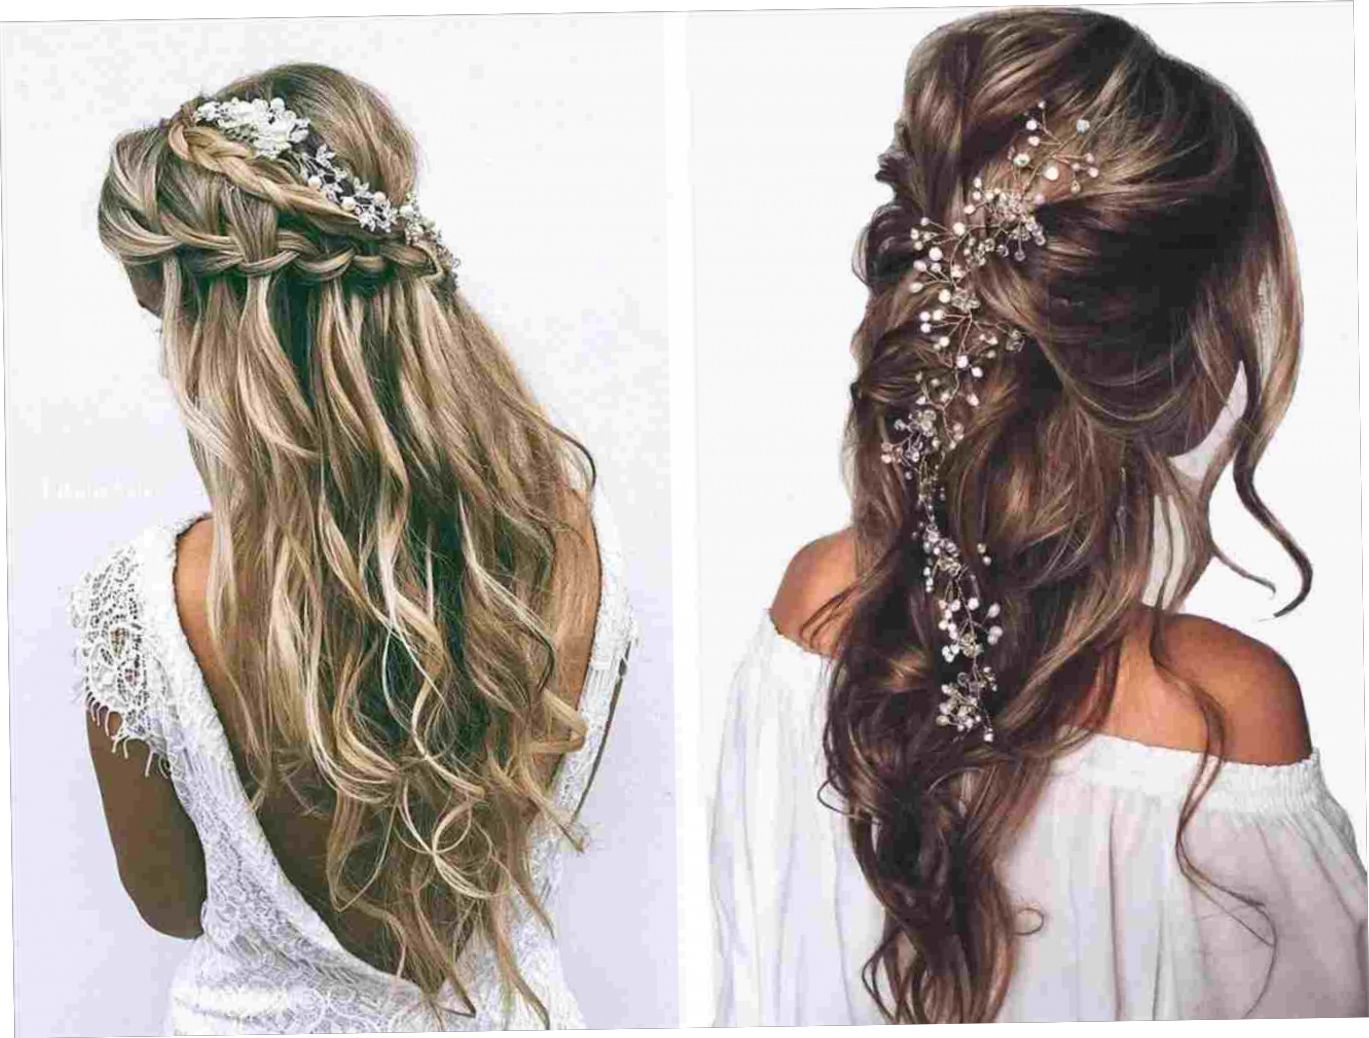 Wedding Hairstyles Tumblr Wedding Ideas Prom Hair Down Prom Hair Down Prom Hair Medium Curly Hair Styles